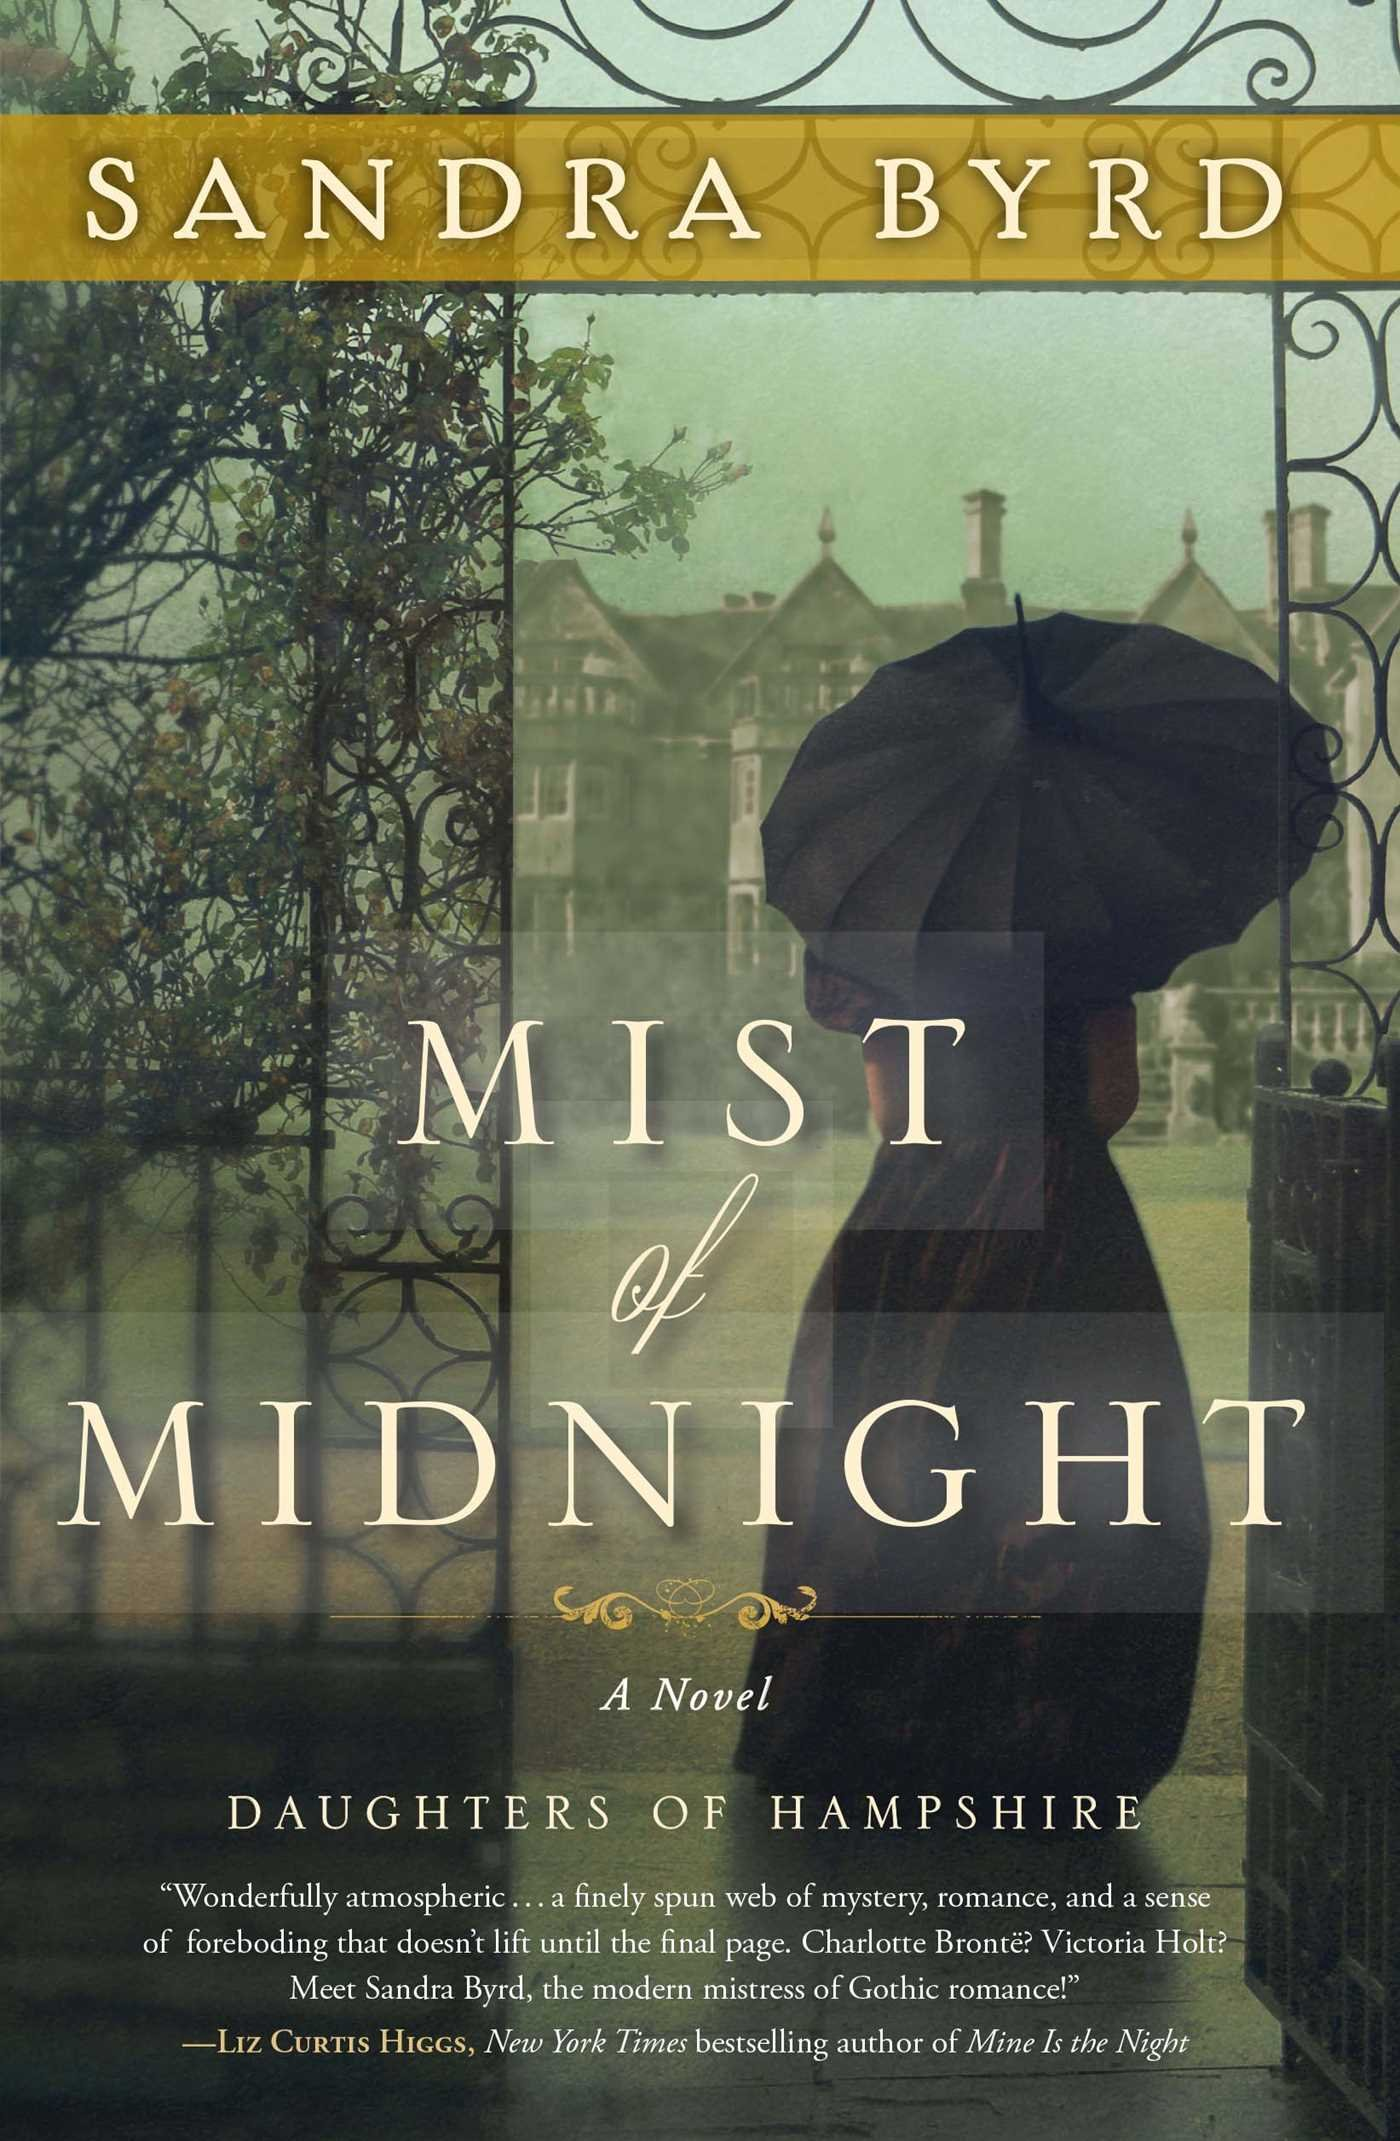 Mist of midnight a novel the daughters of hampshire sandra byrd mist of midnight a novel the daughters of hampshire sandra byrd 9781476717869 amazon books fandeluxe Gallery